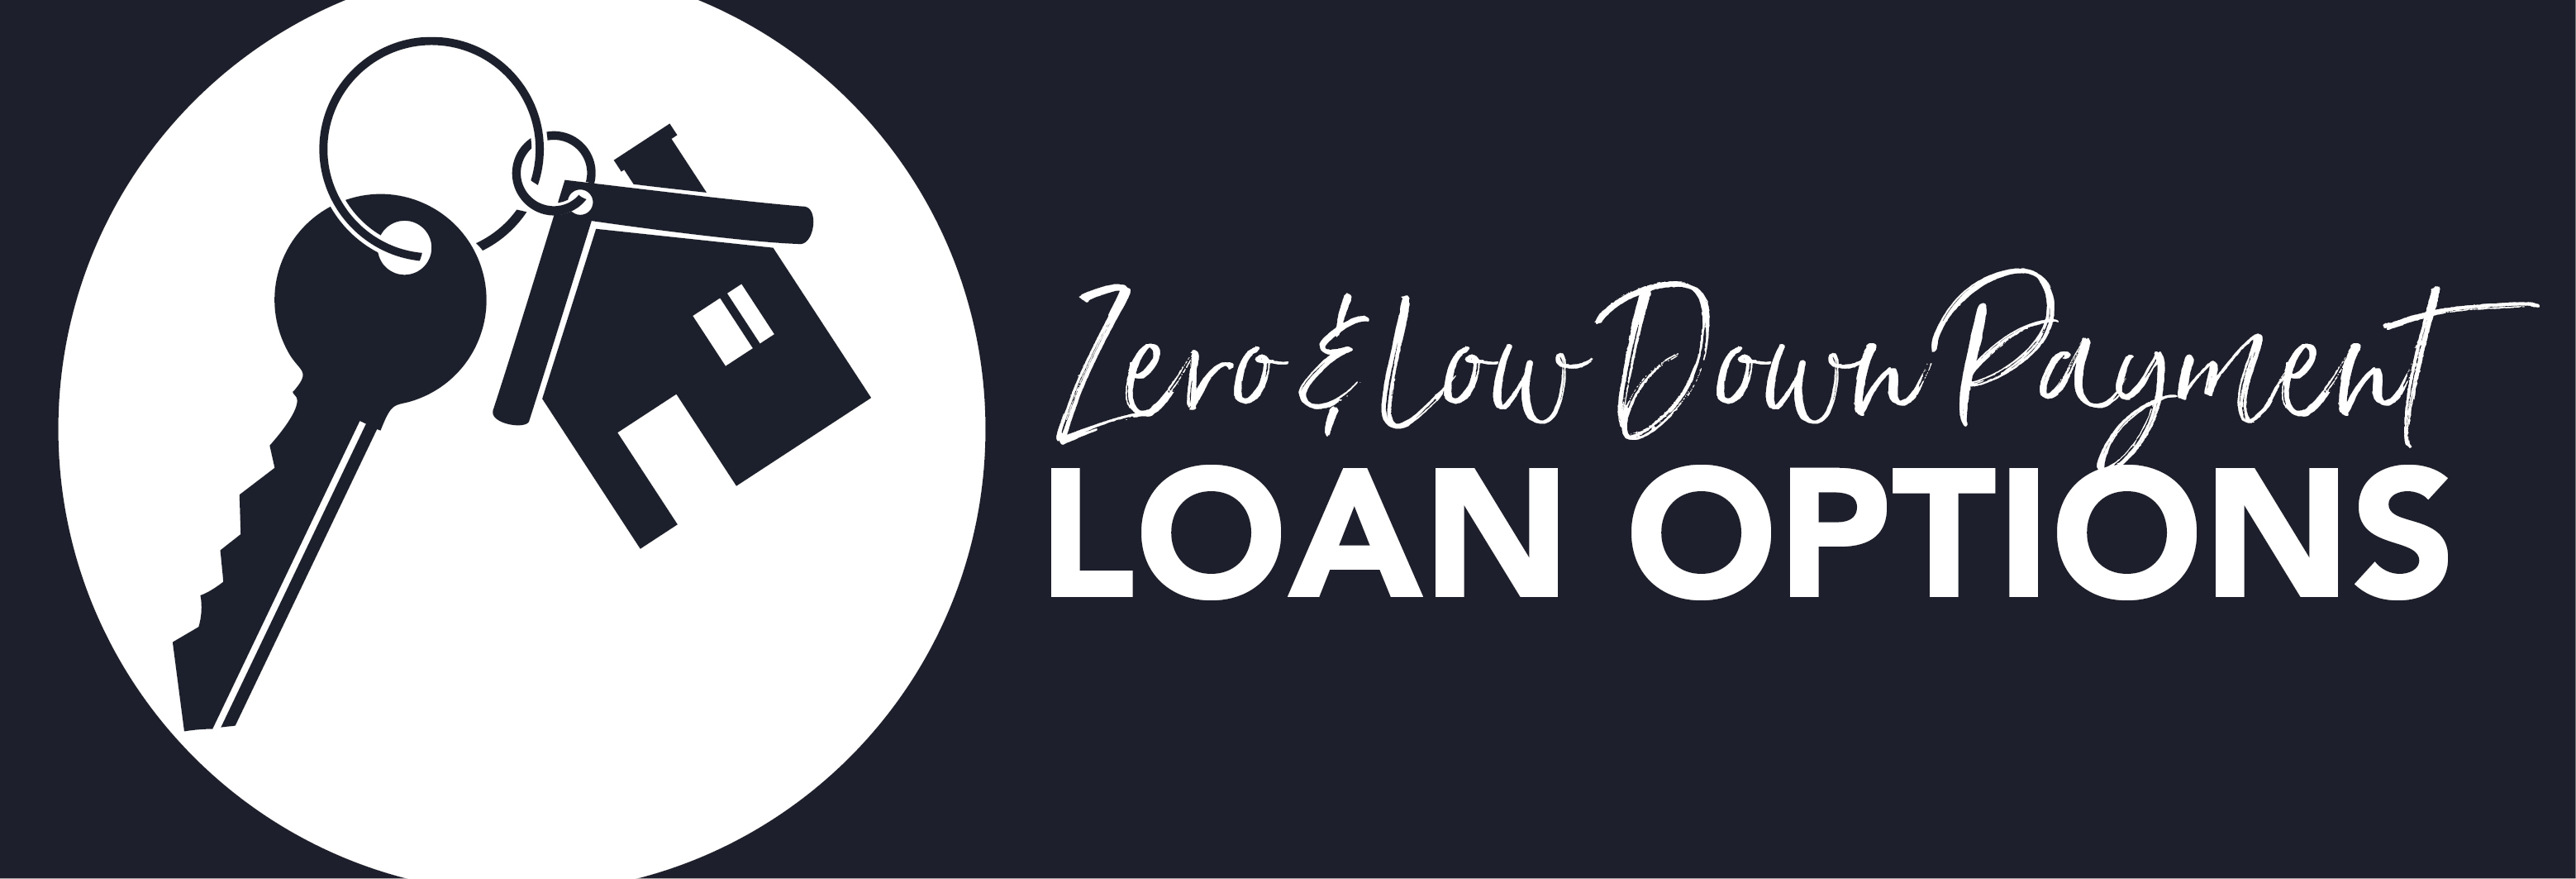 Zero and Low Down Payment Loan Options Teaser